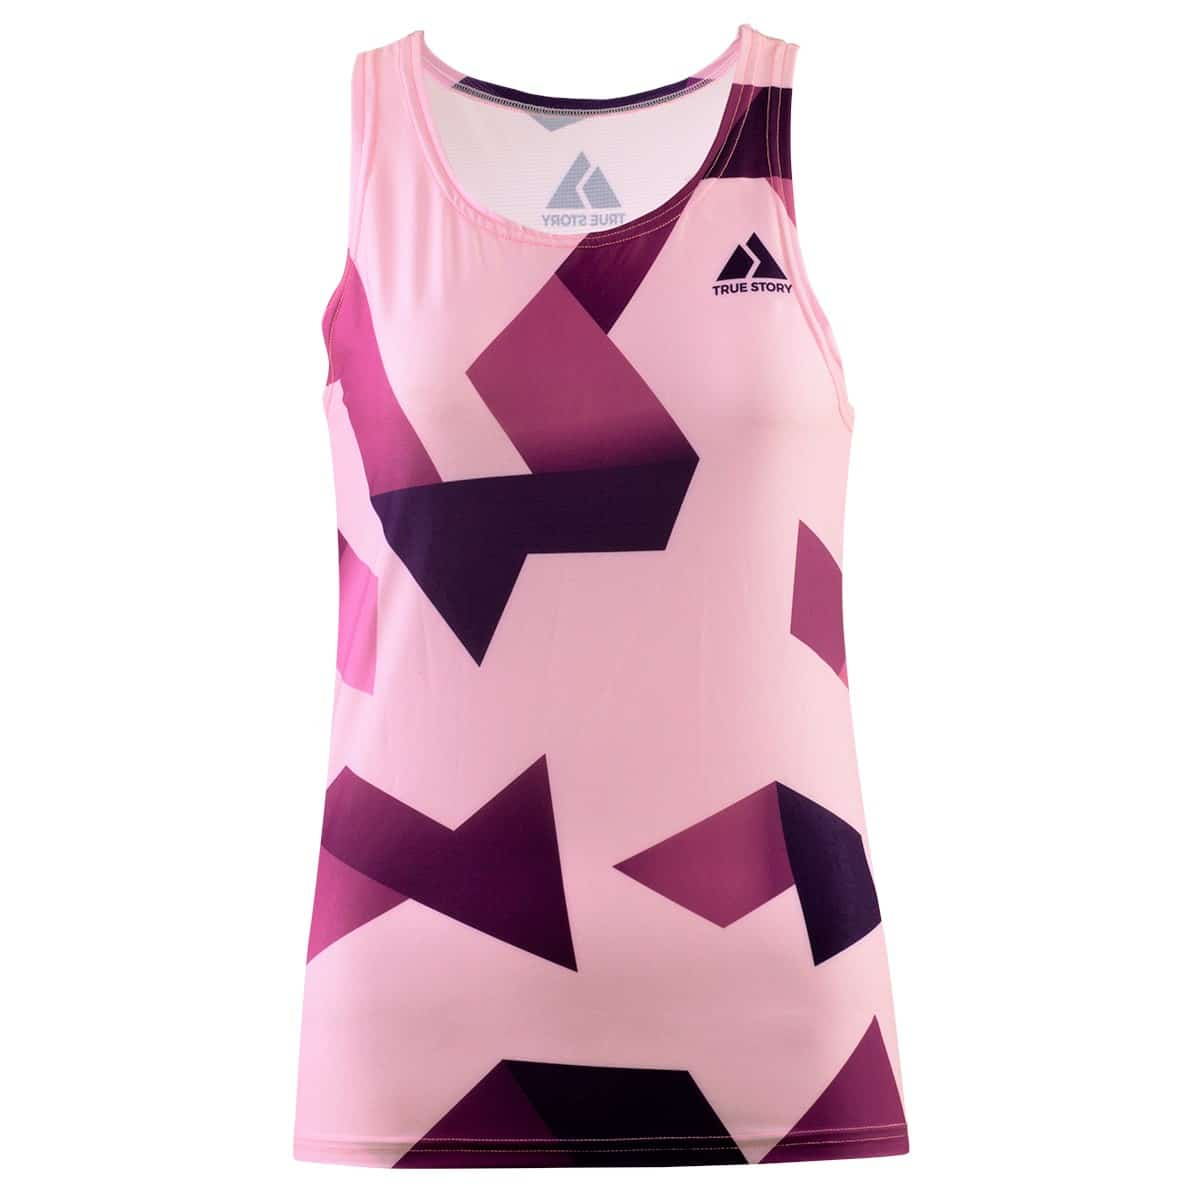 05| Elite tank top, WOMEN